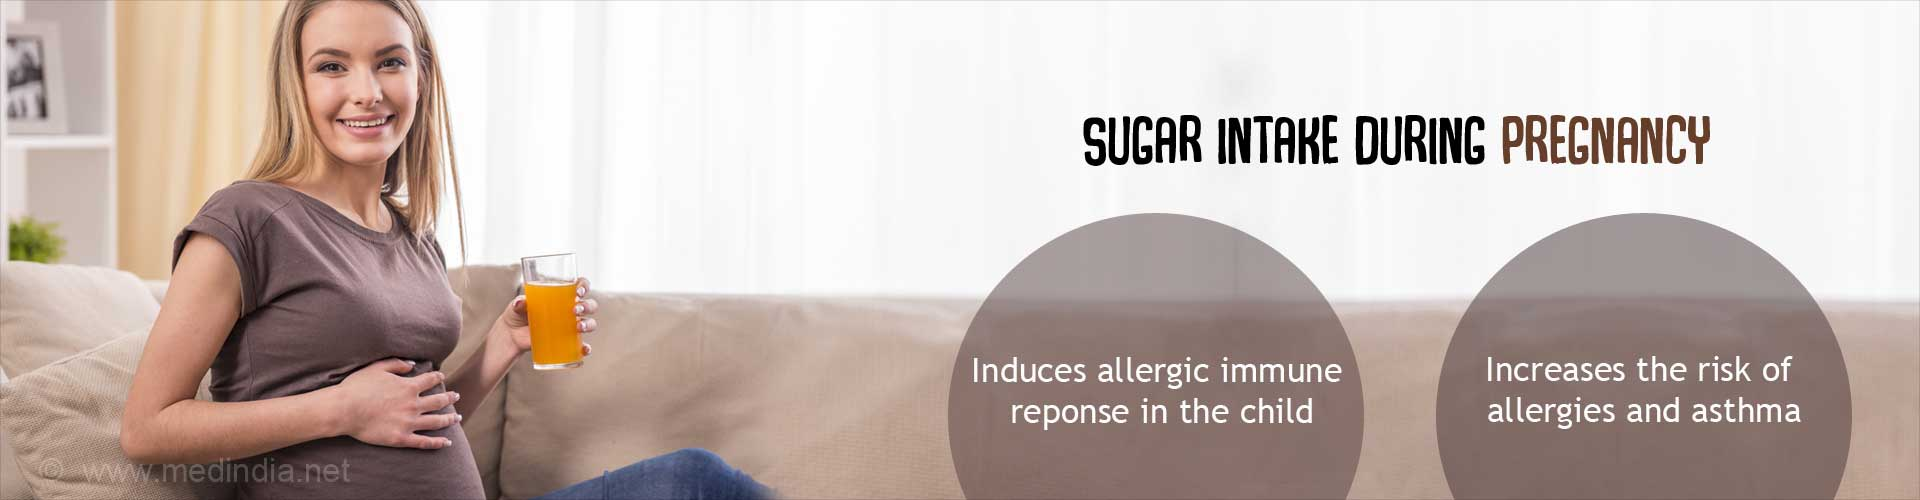 Can Sugar Intake During Pregnancy Trigger Asthma in Child?